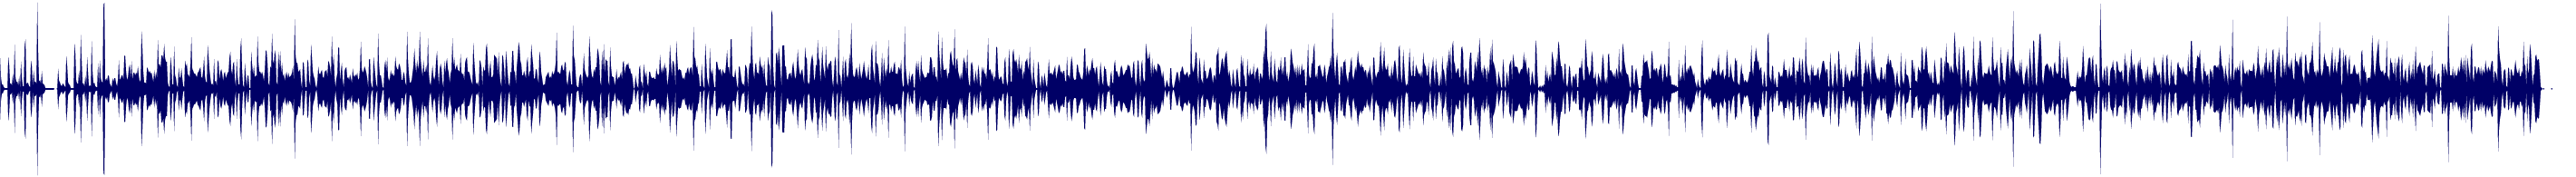 waveform of track #85471